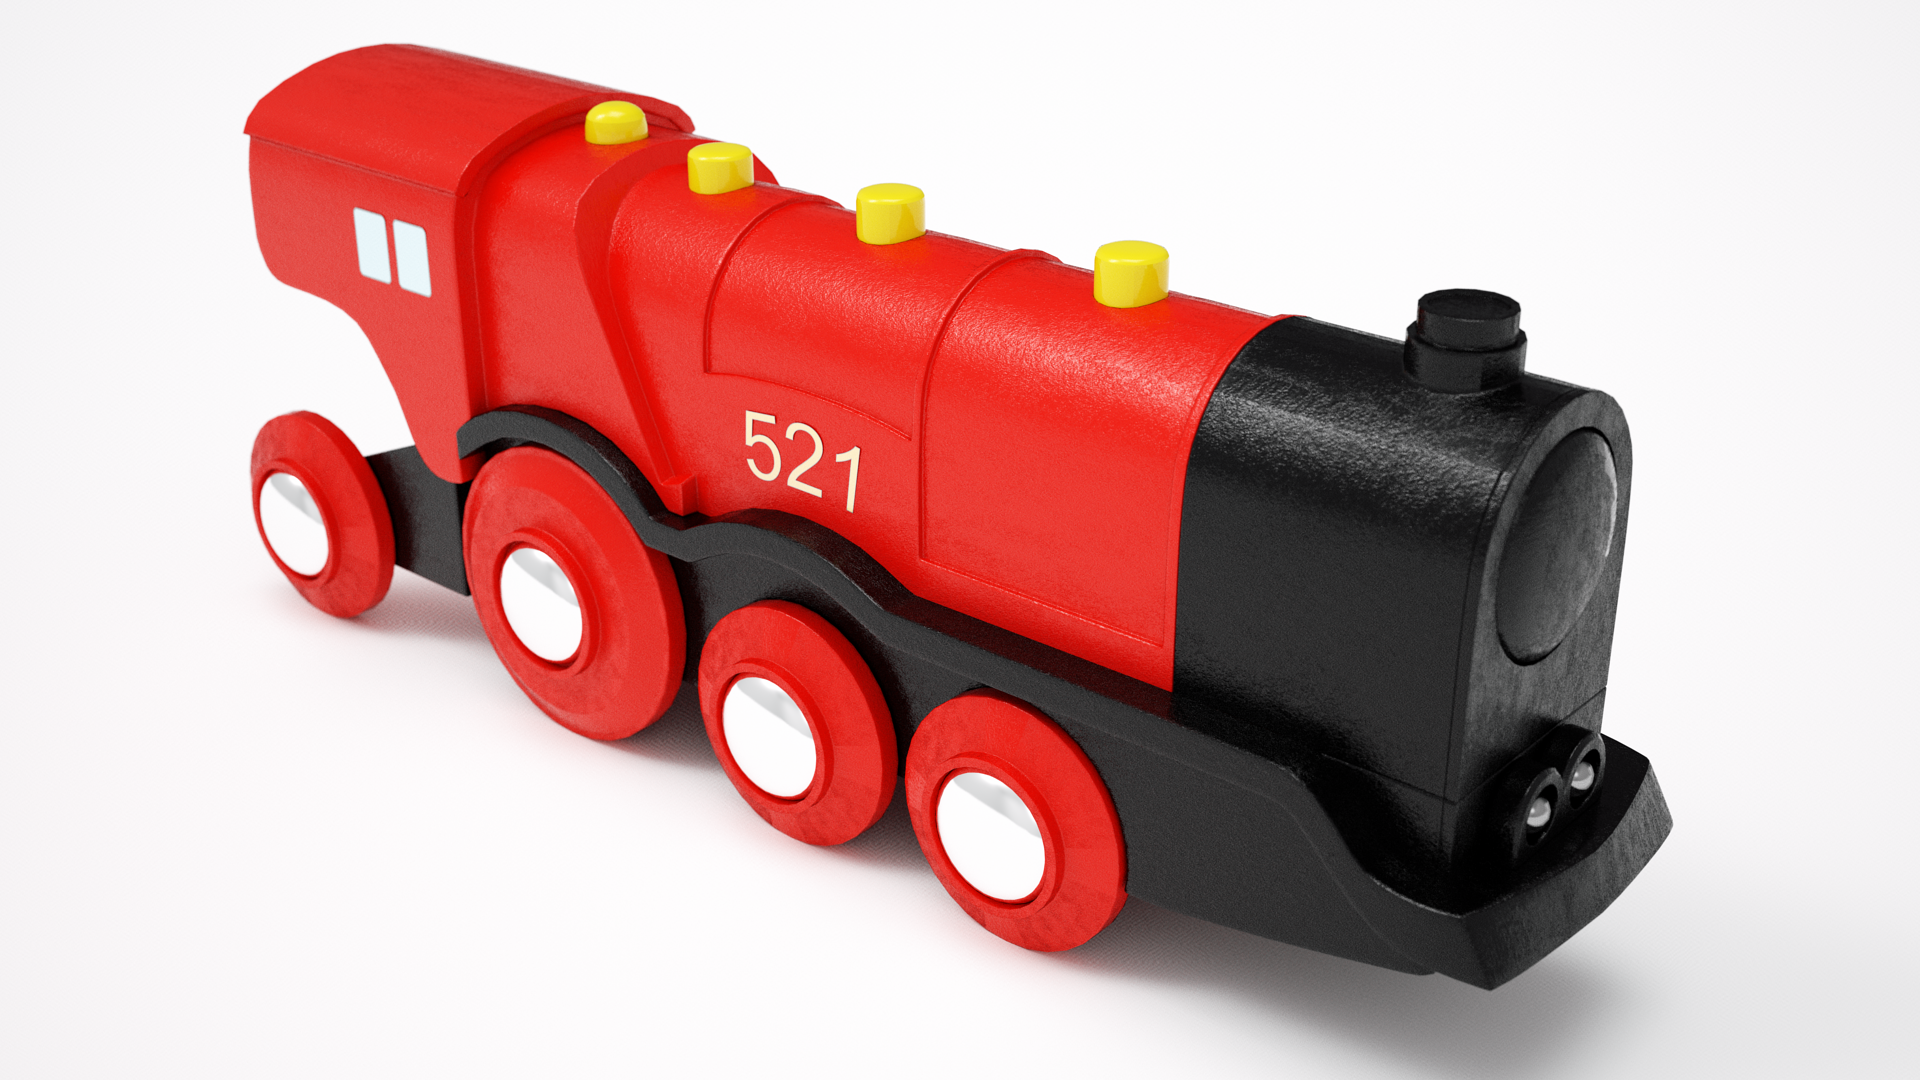 Toy Train Vector Free Download Png image #31600